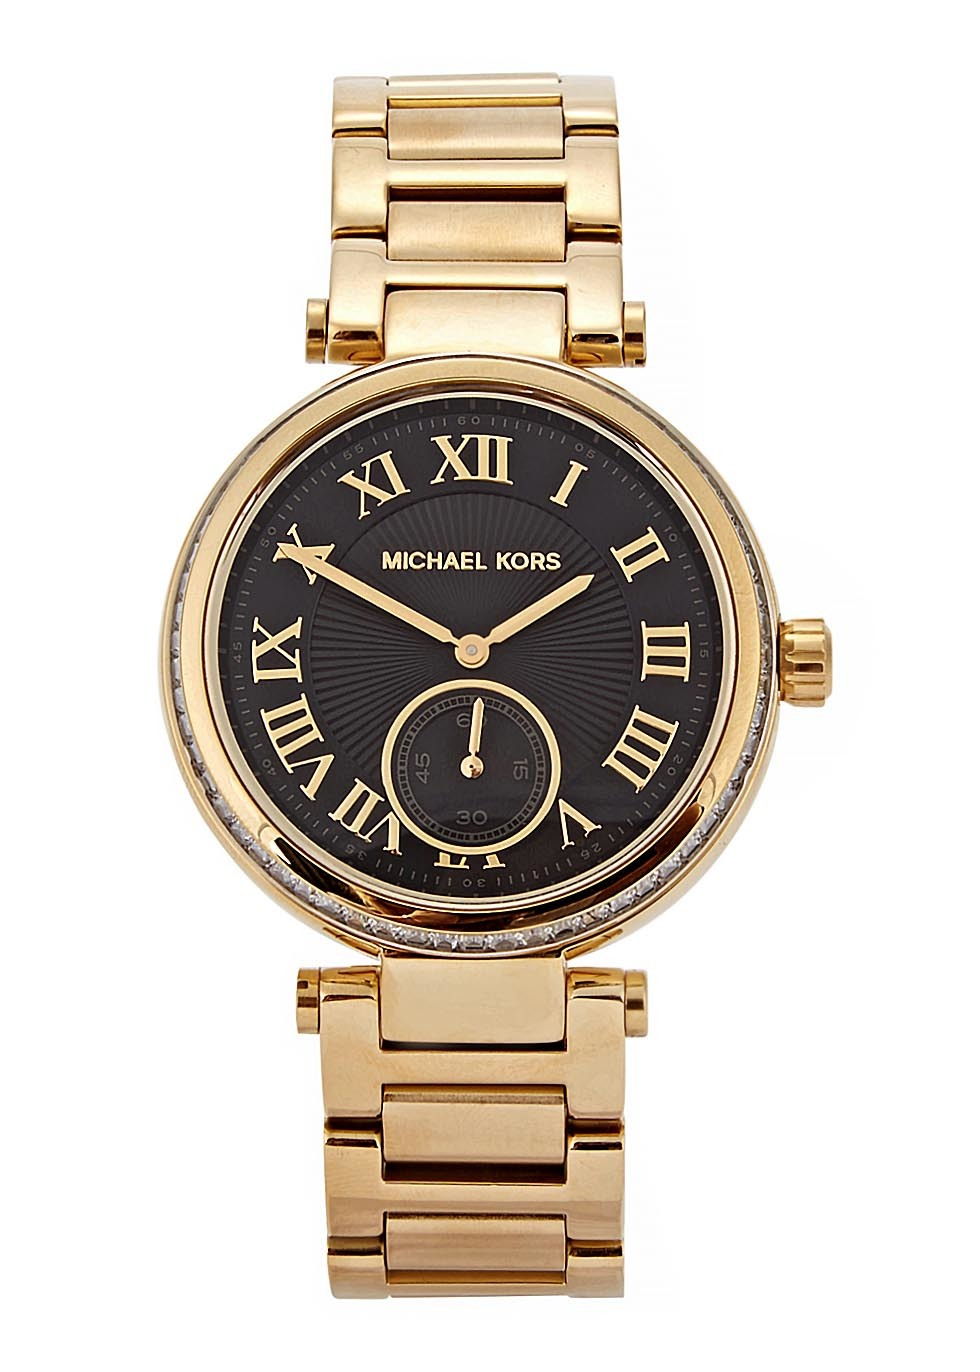 Skylar Gold Tone Stainless Steel Watch - predominant colour: gold; secondary colour: black; occasions: work, creative work; style: metal bracelet; size: large/oversized; material: chain/metal; finish: metallic; pattern: plain; season: s/s 2015